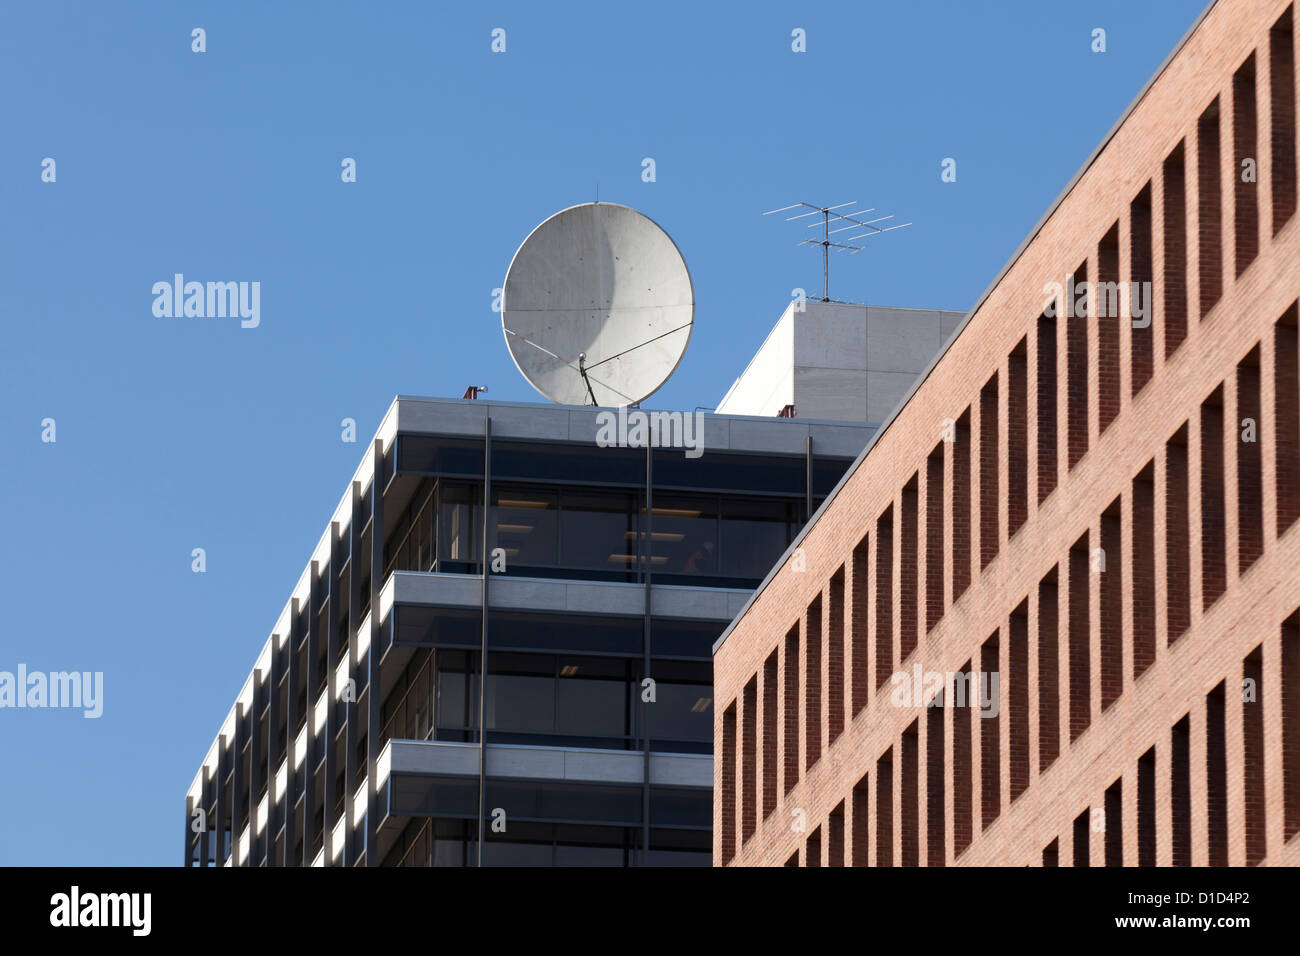 Communications satellite dish on top of building - Stock Image